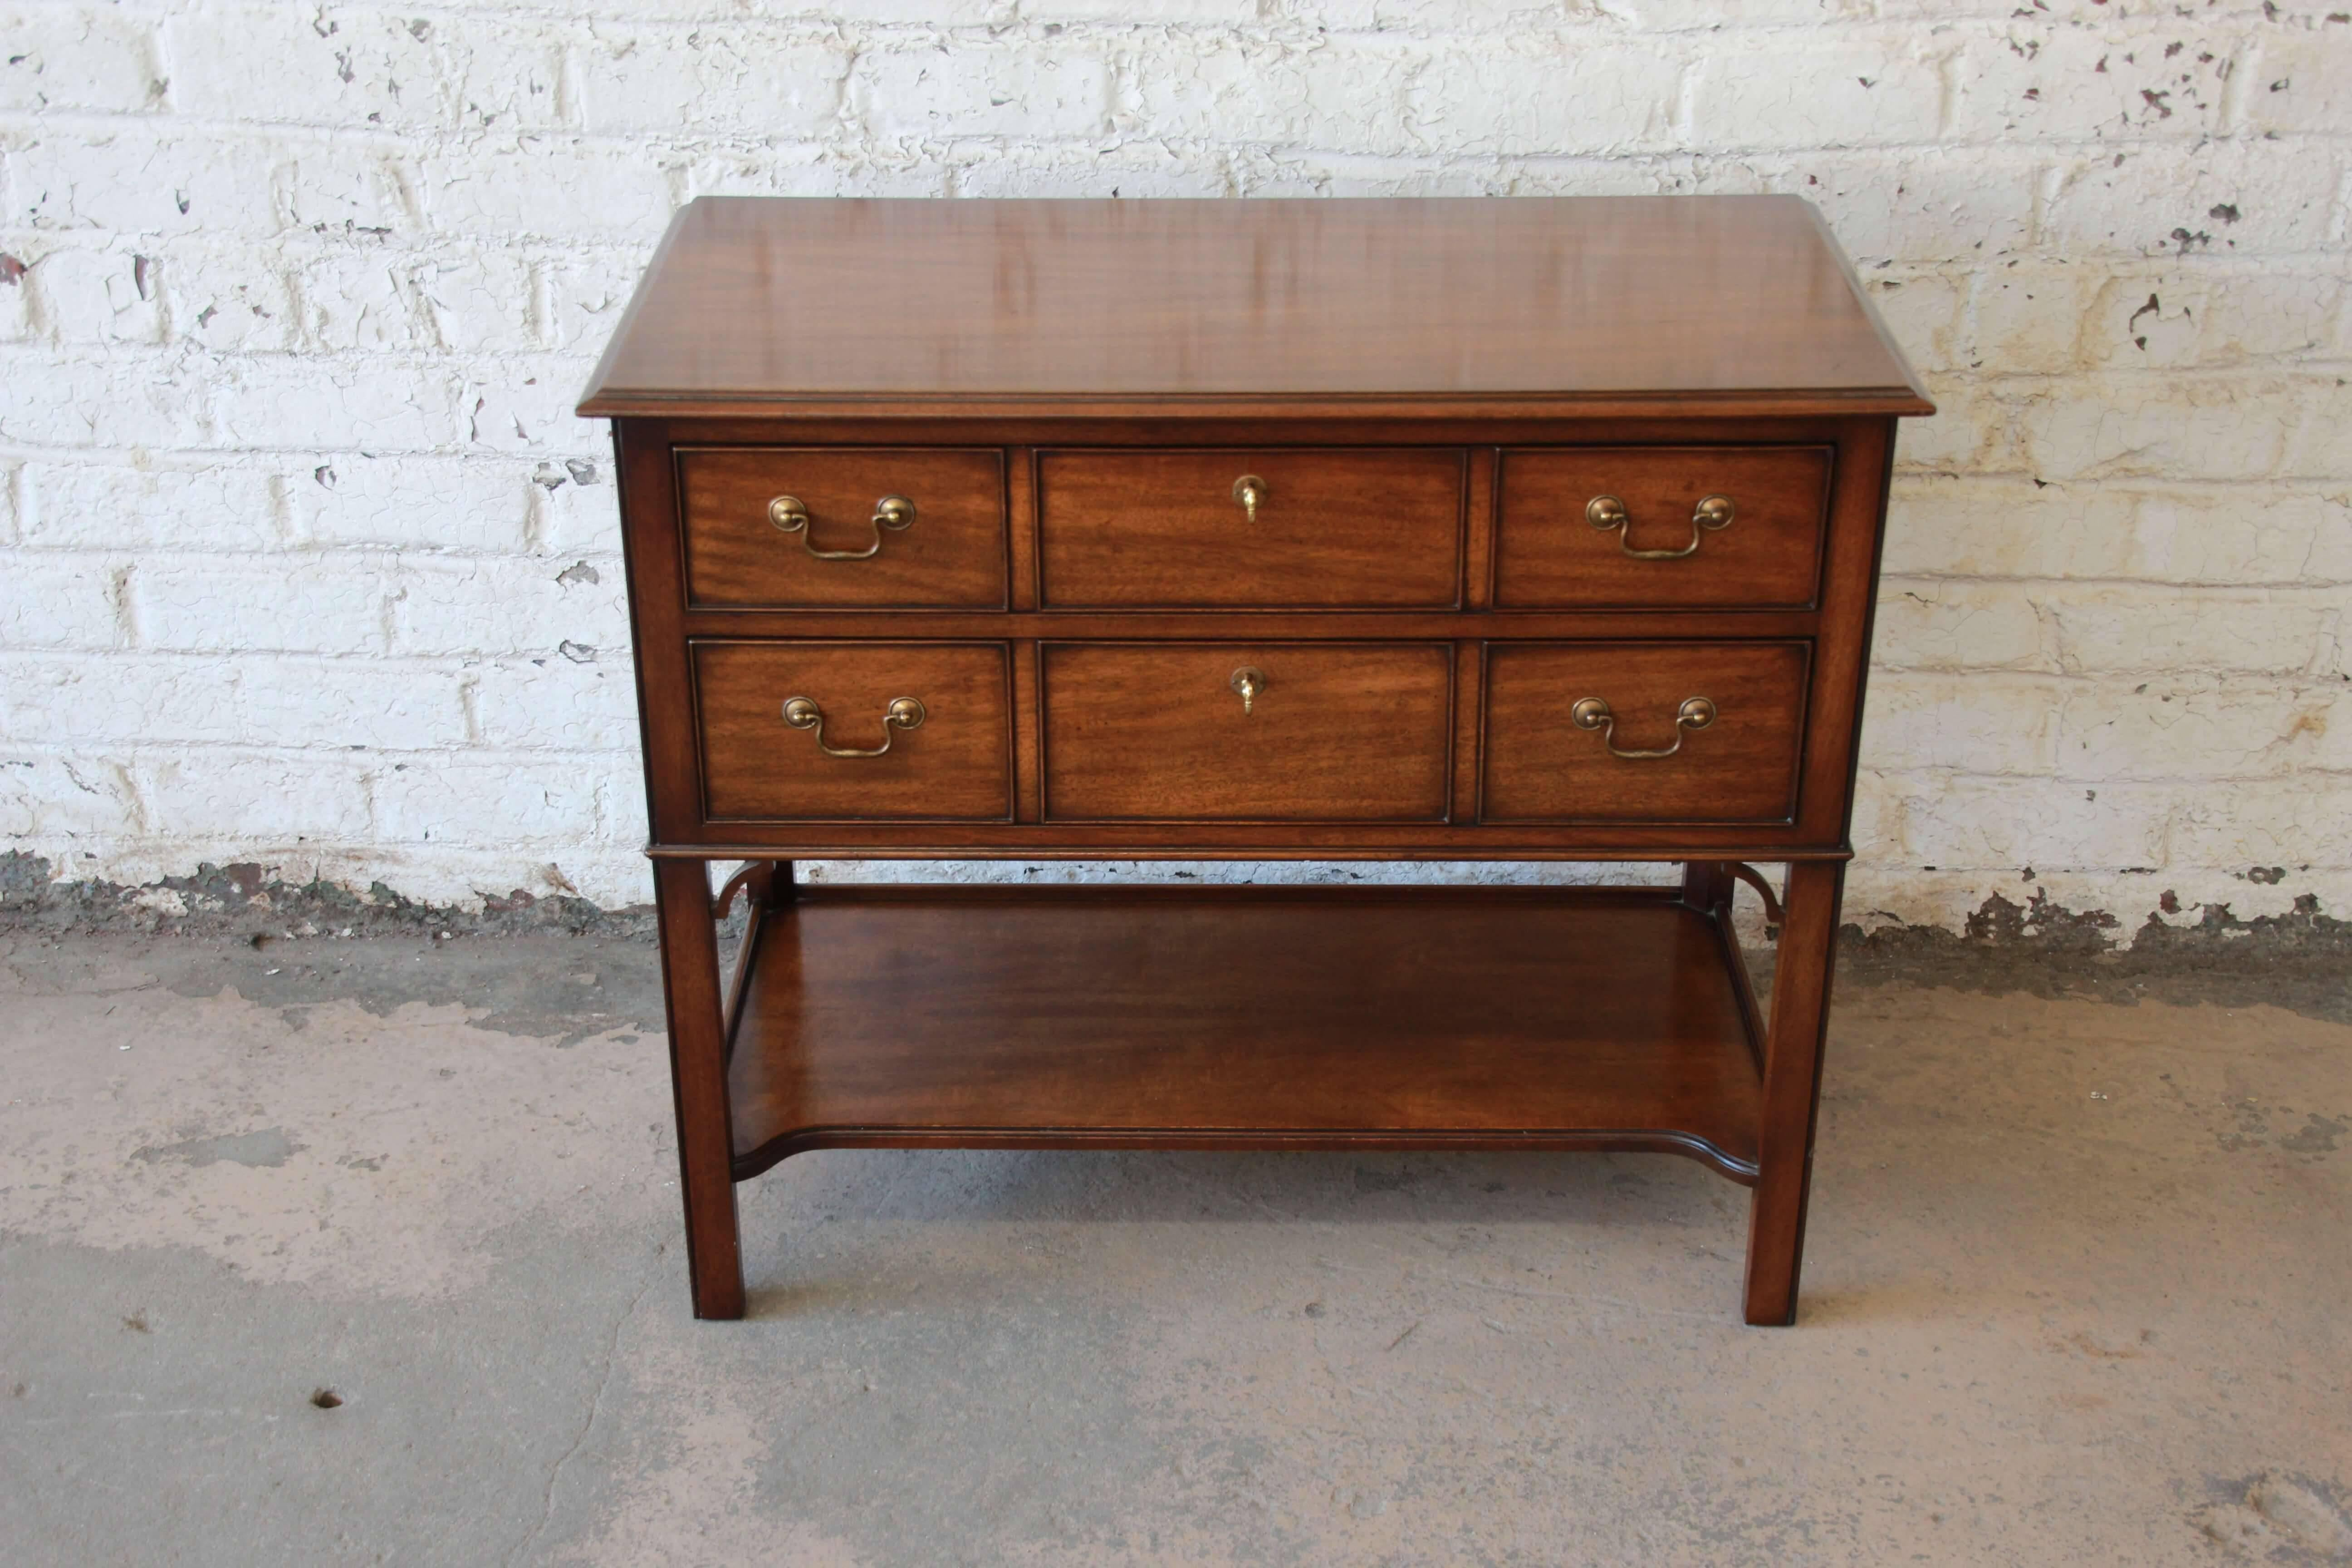 Offering A Very Nice Kindel Furniture Sideboard Server. The Server Has A  Moderate Asian Style